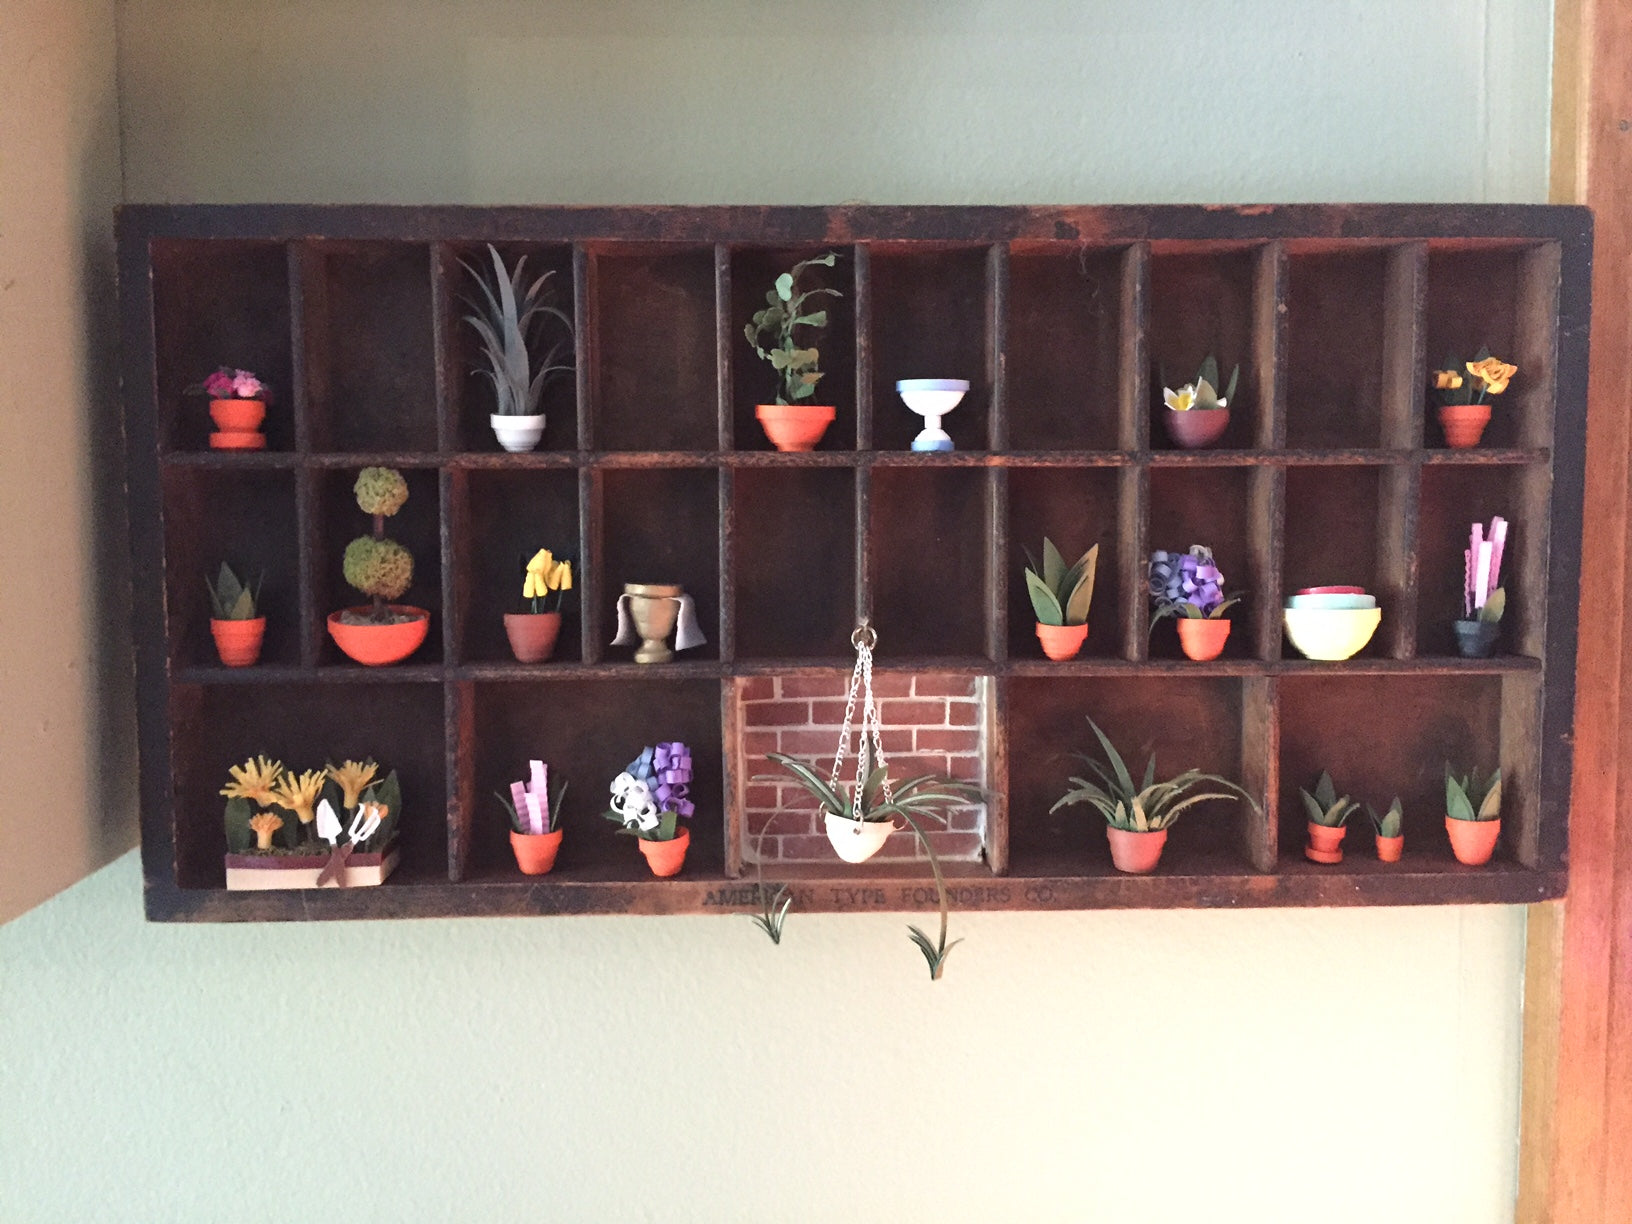 Potted Plants on Shelves